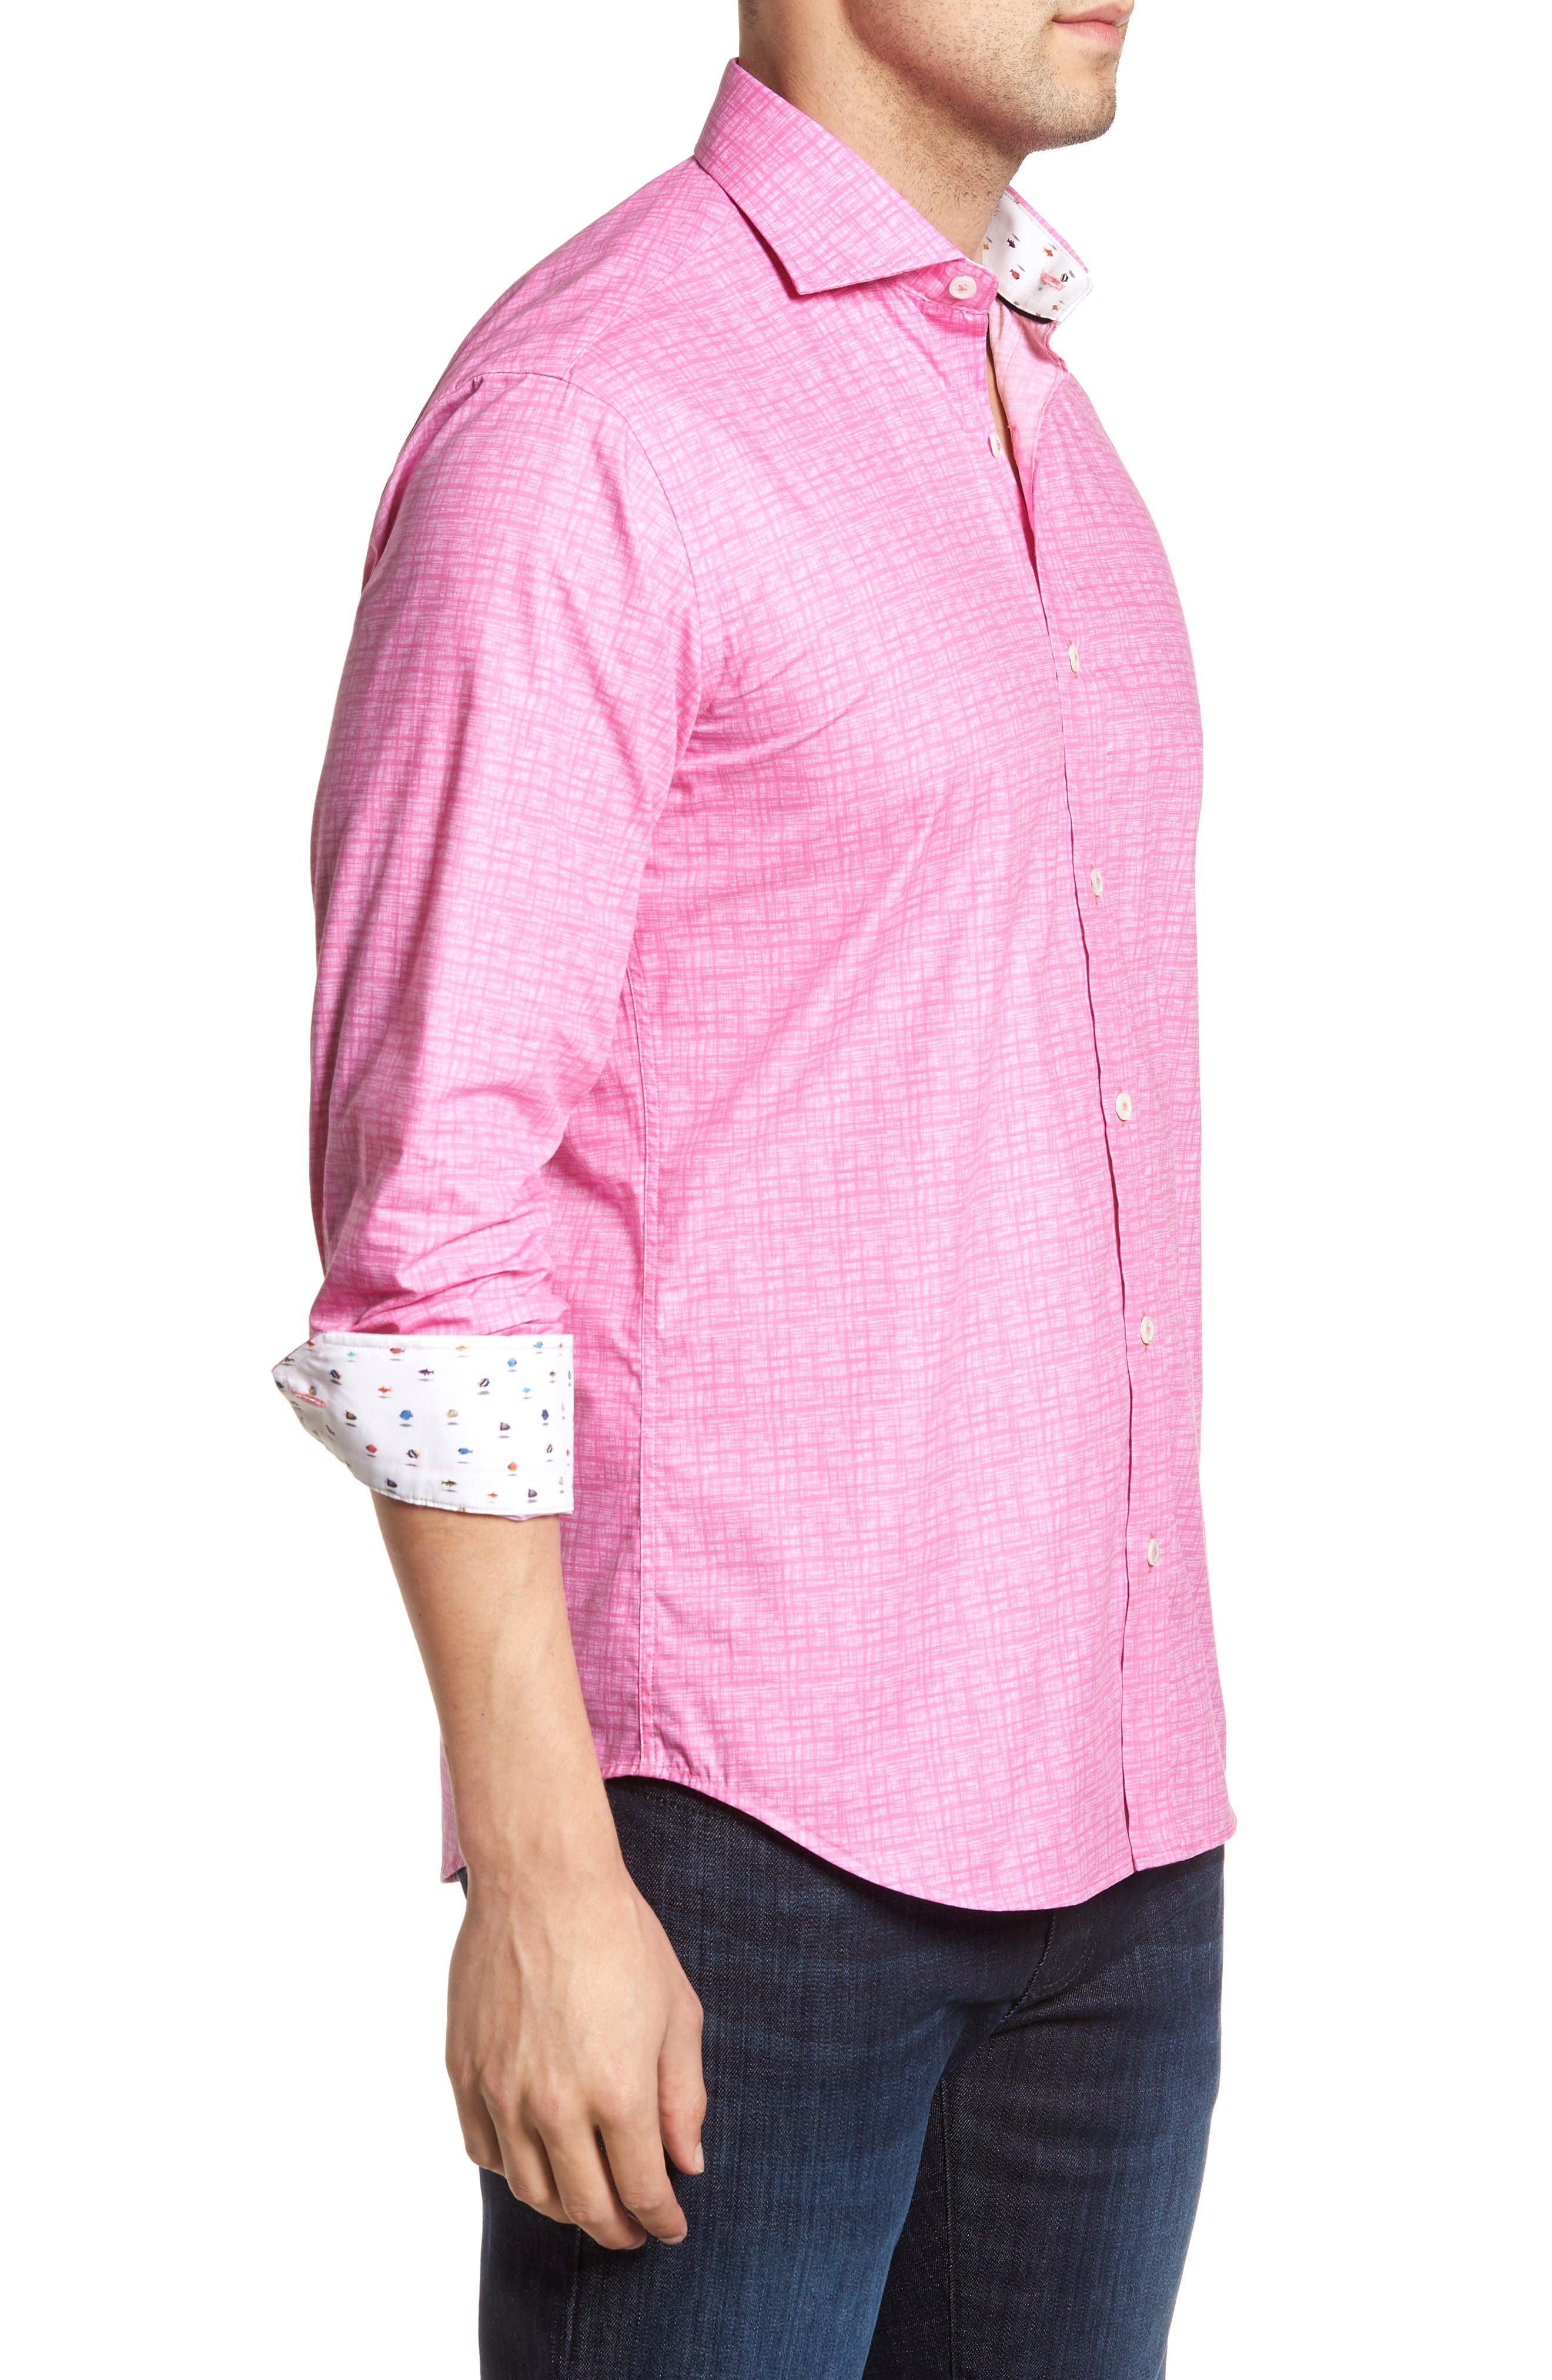 Freehand Shaped Fit Sport Shirt,                             Alternate thumbnail 9, color,                             Pink